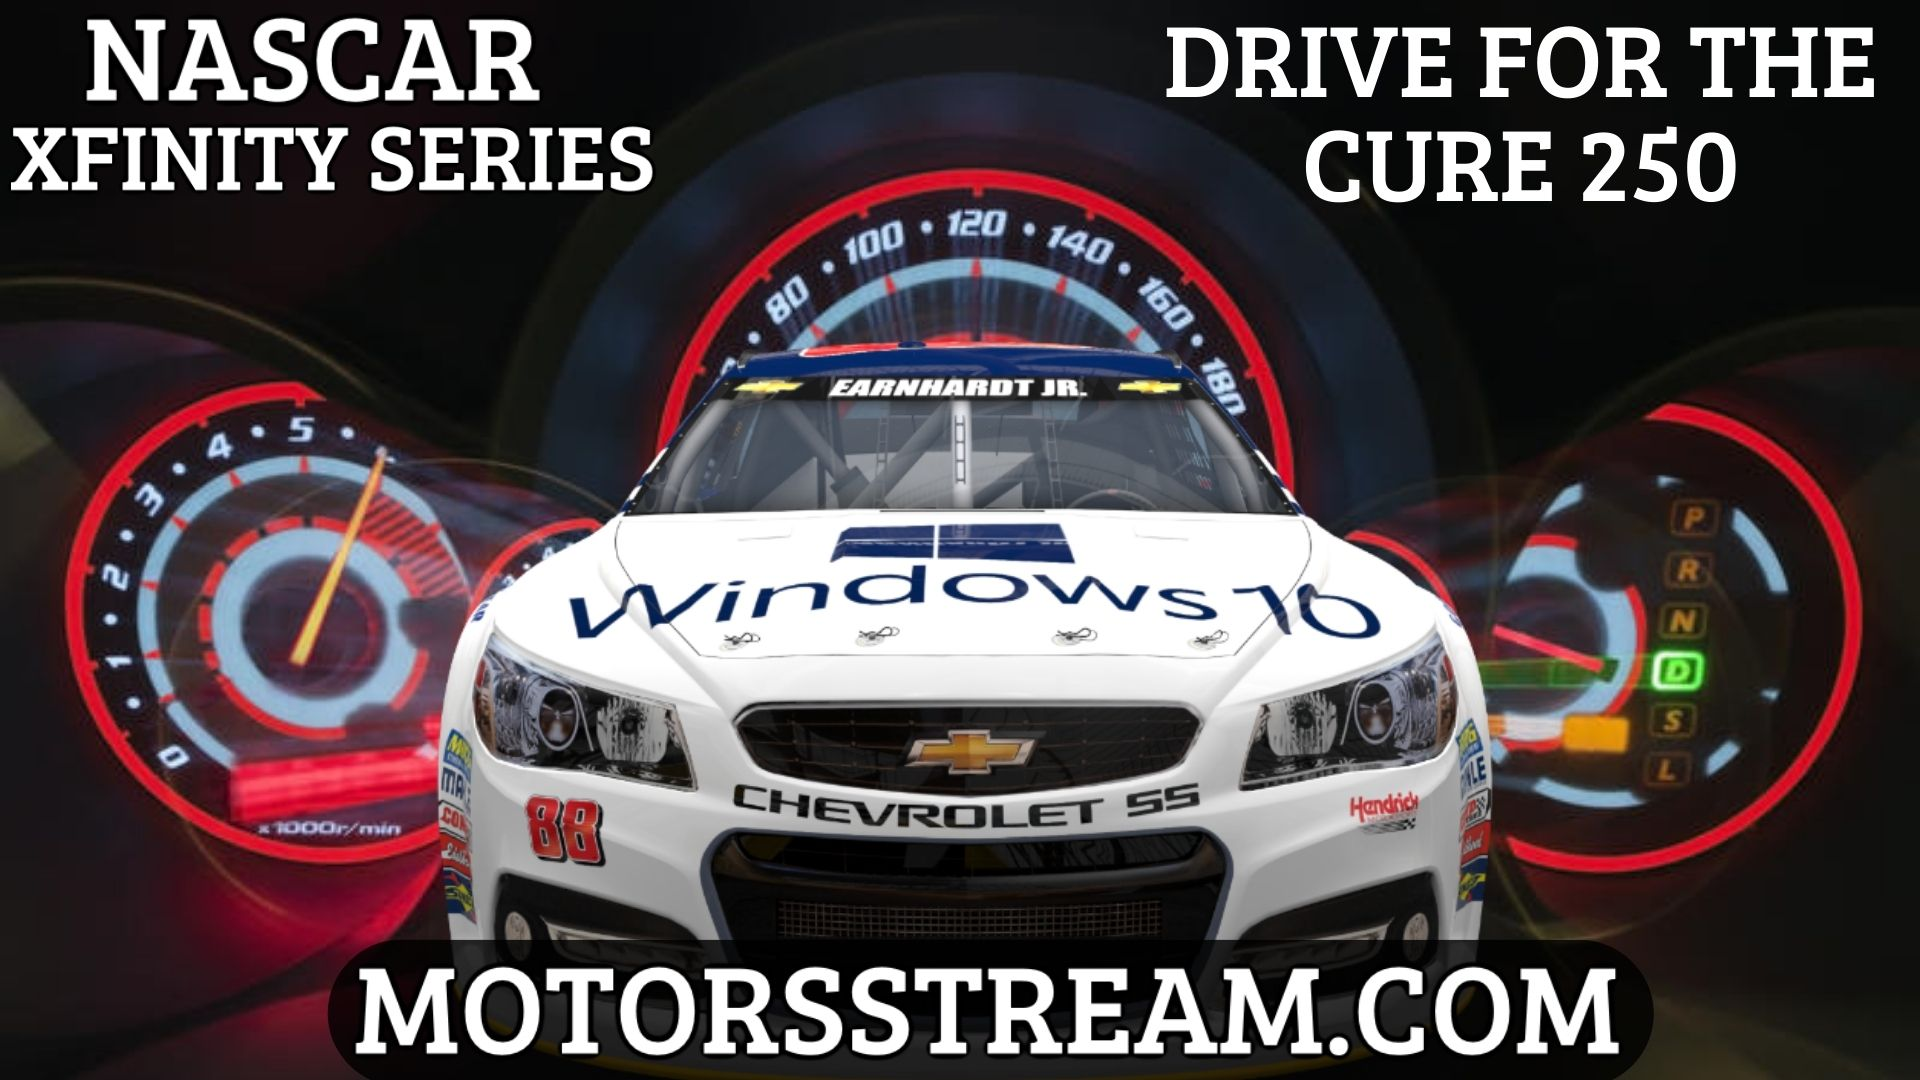 Drive For The Cure 250 Live Stream | NASCAR Xfinity 2021